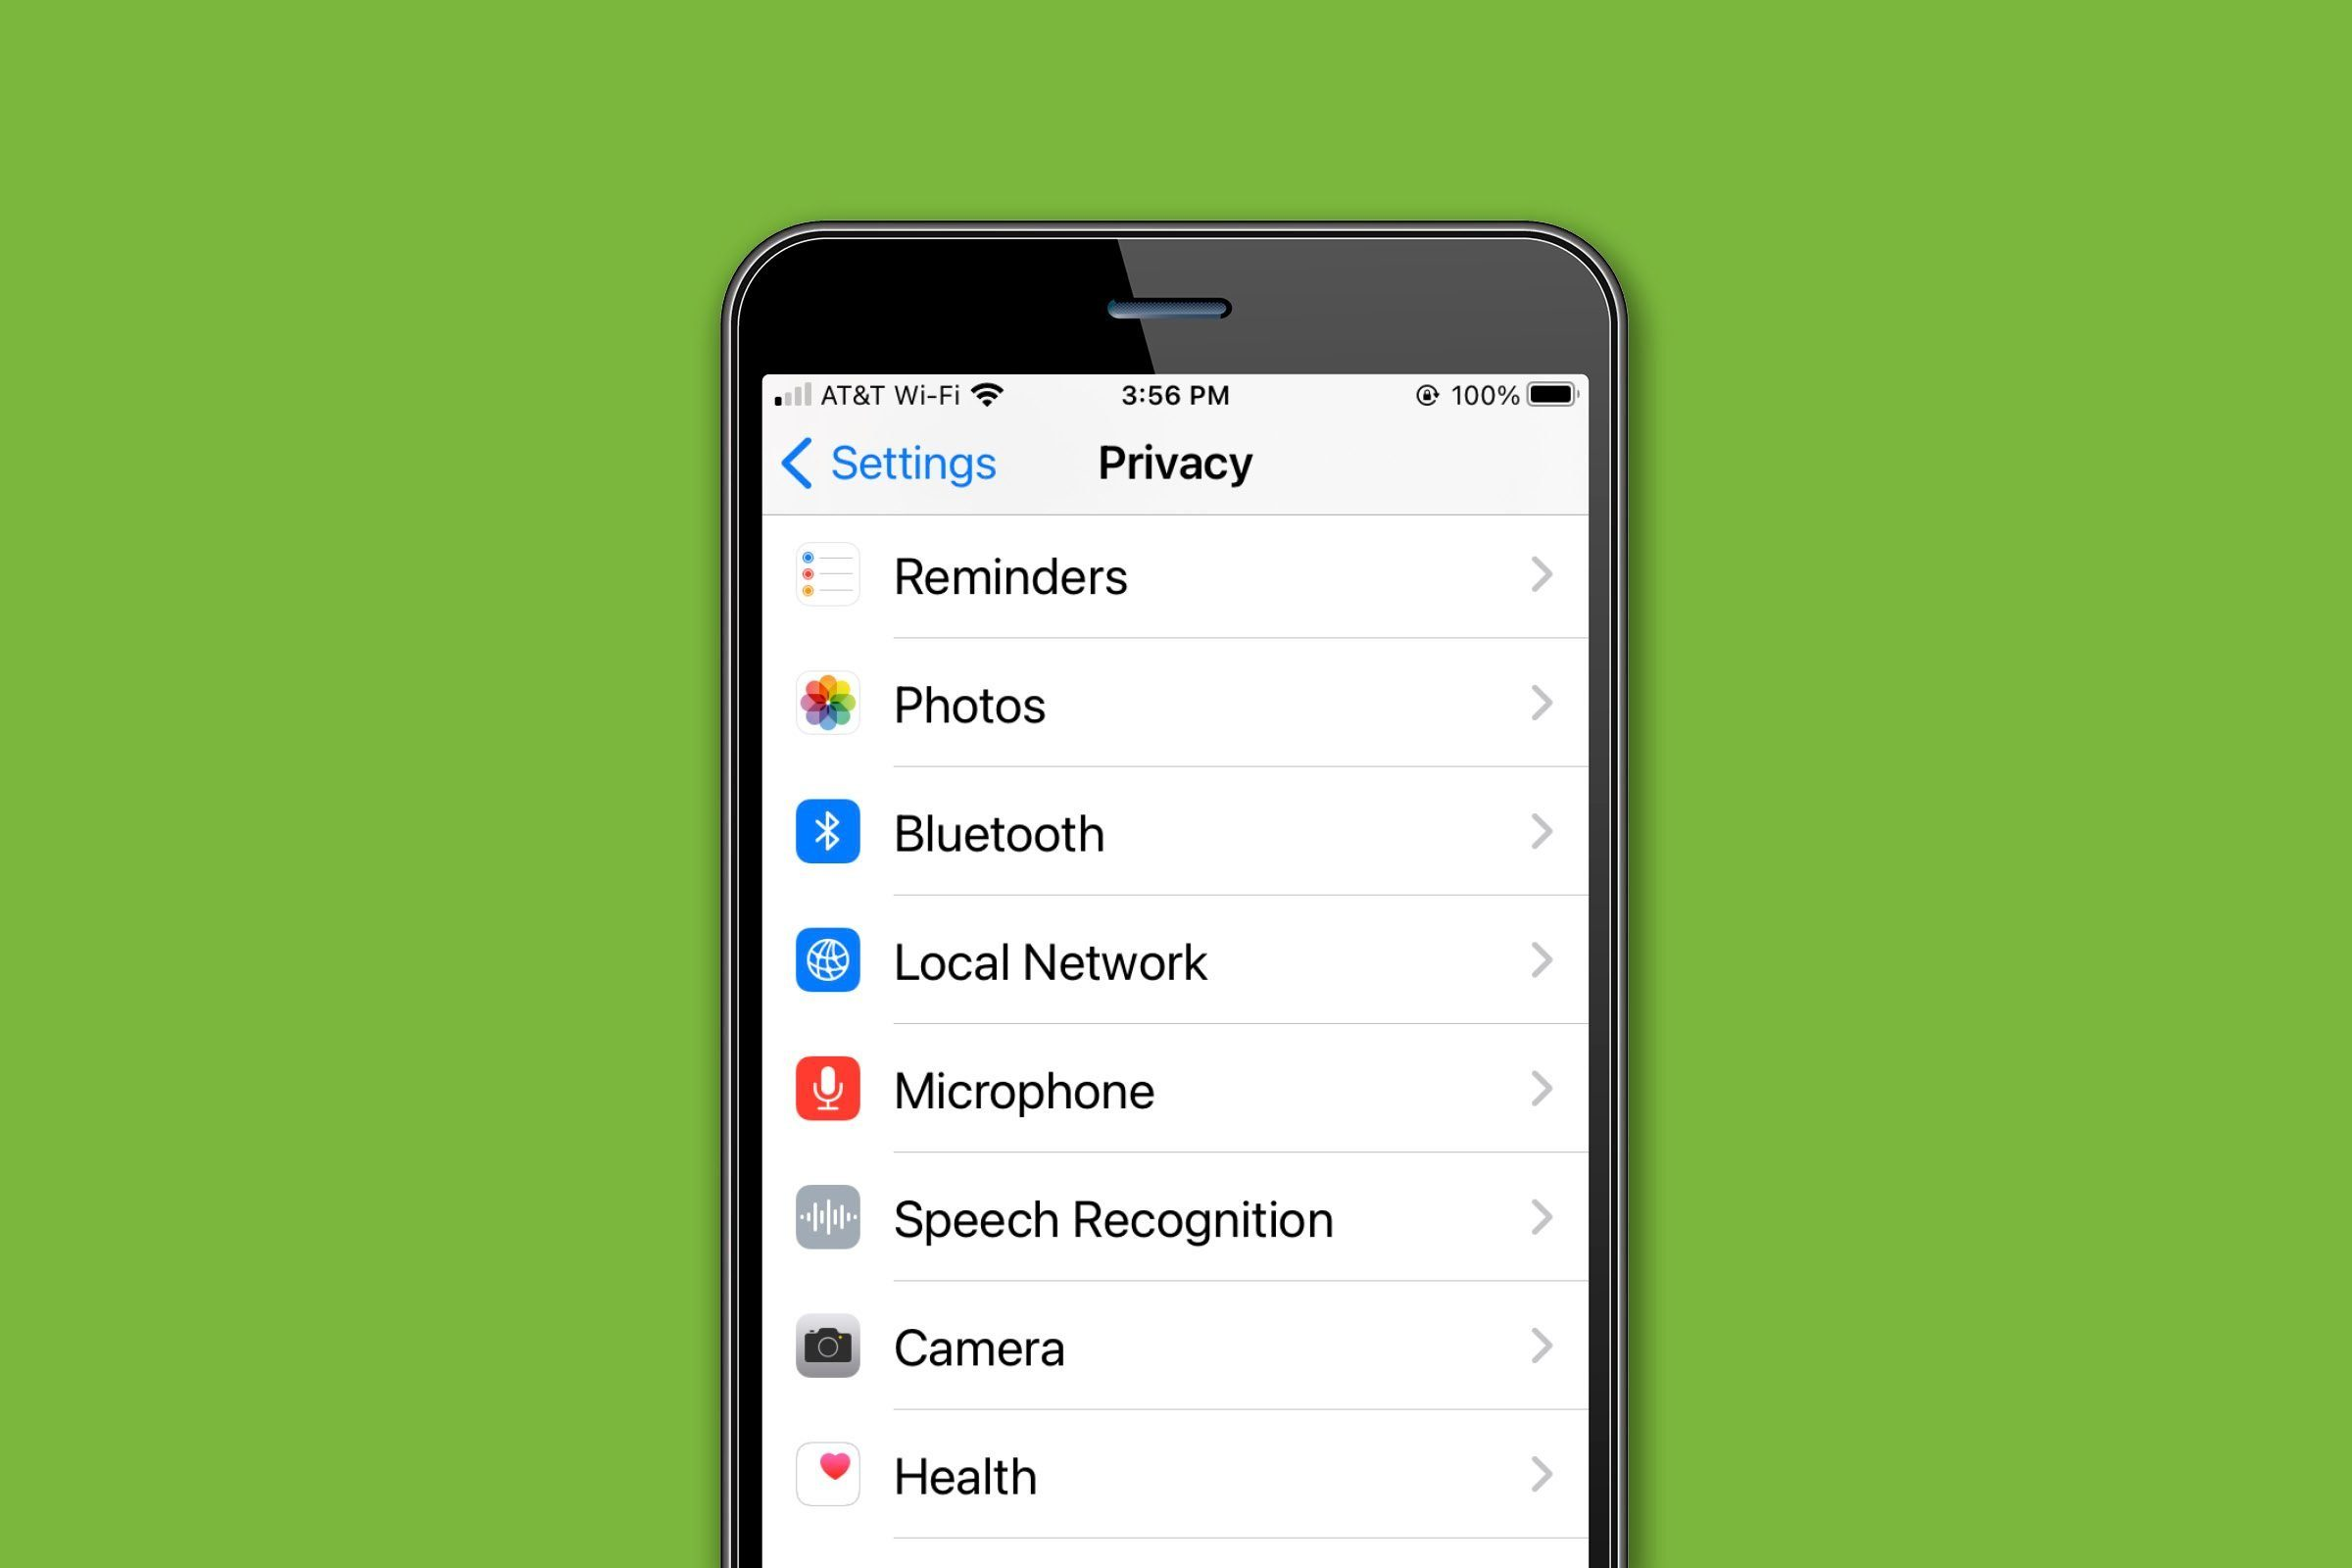 iPhone privacy settings menu